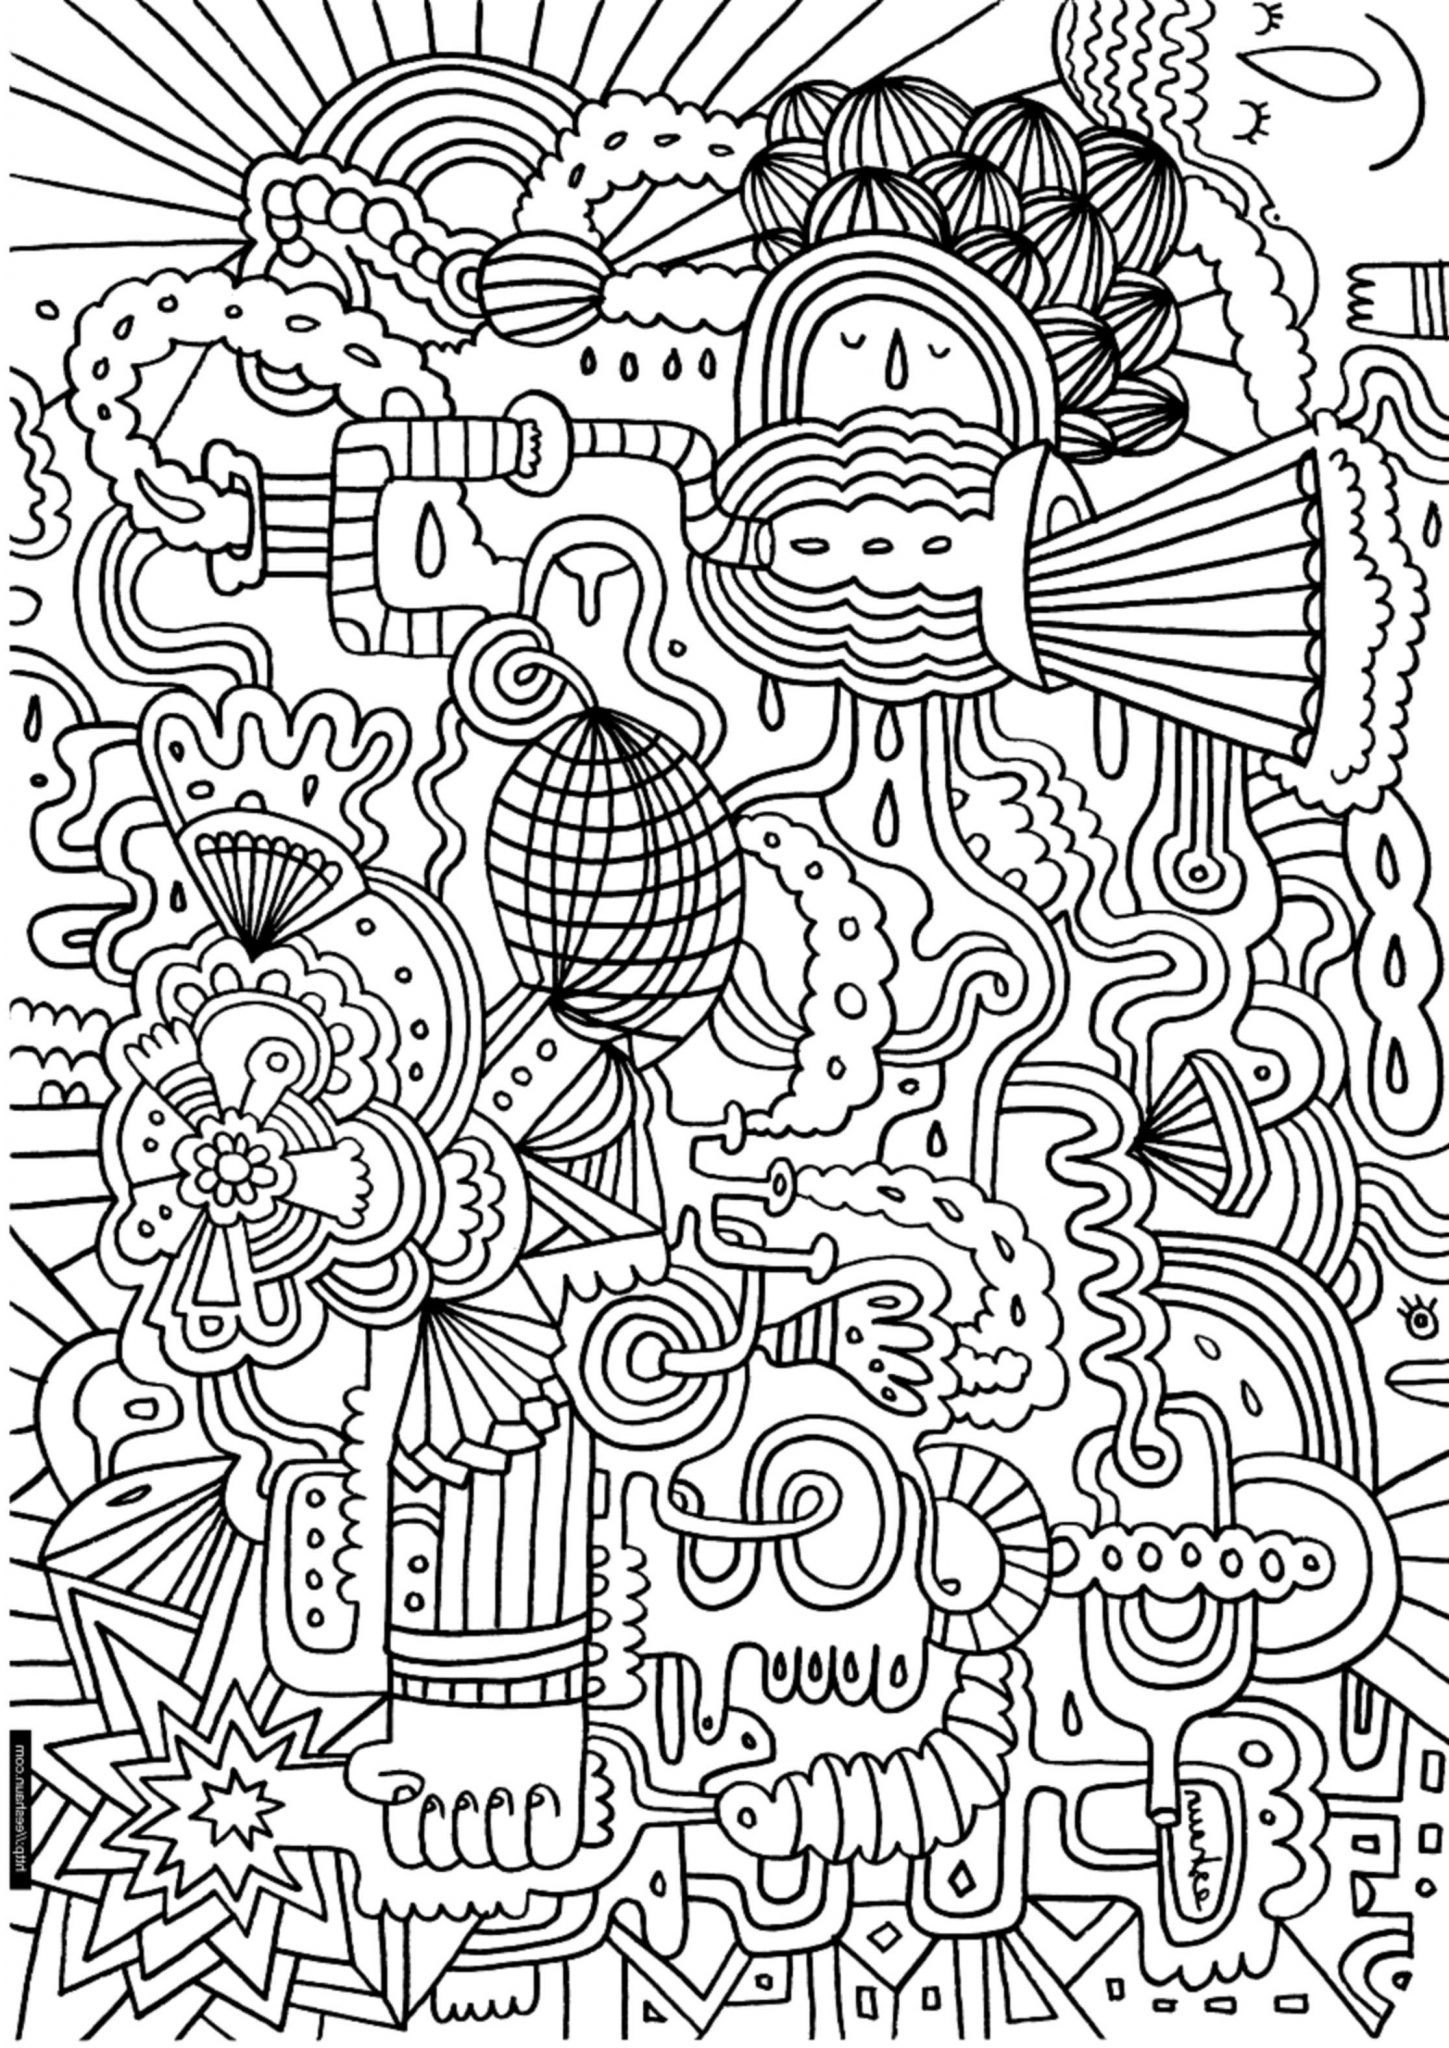 complex colouring sheets print download complex coloring pages for kids and adults colouring sheets complex